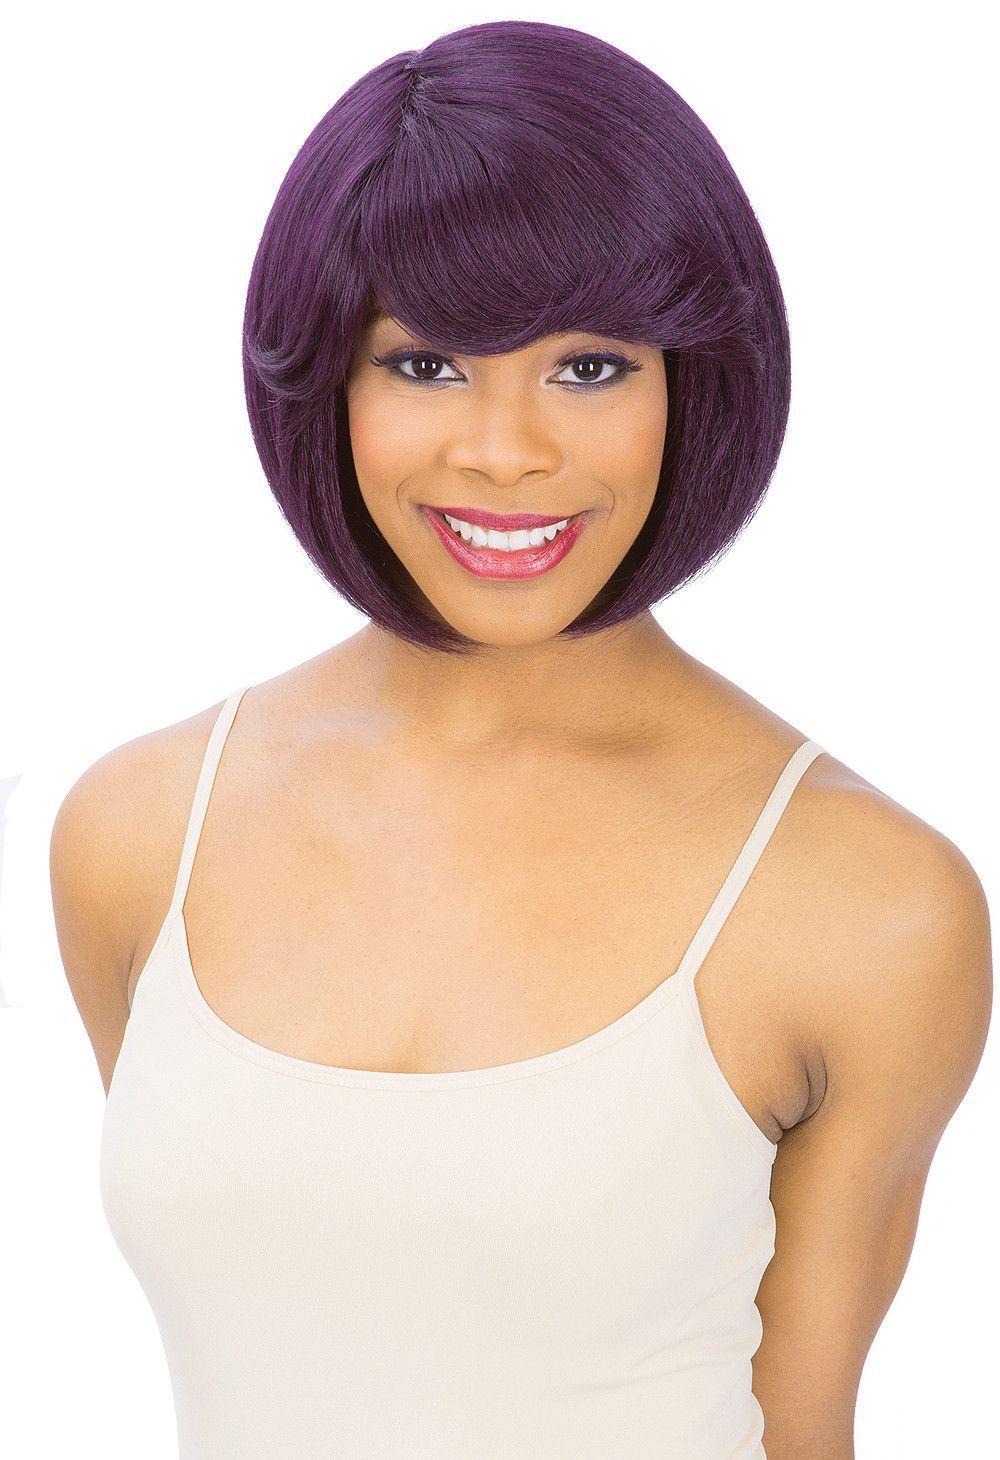 New Born Free Collection Cutie Wig Ct75 Wigs Collection Fashion